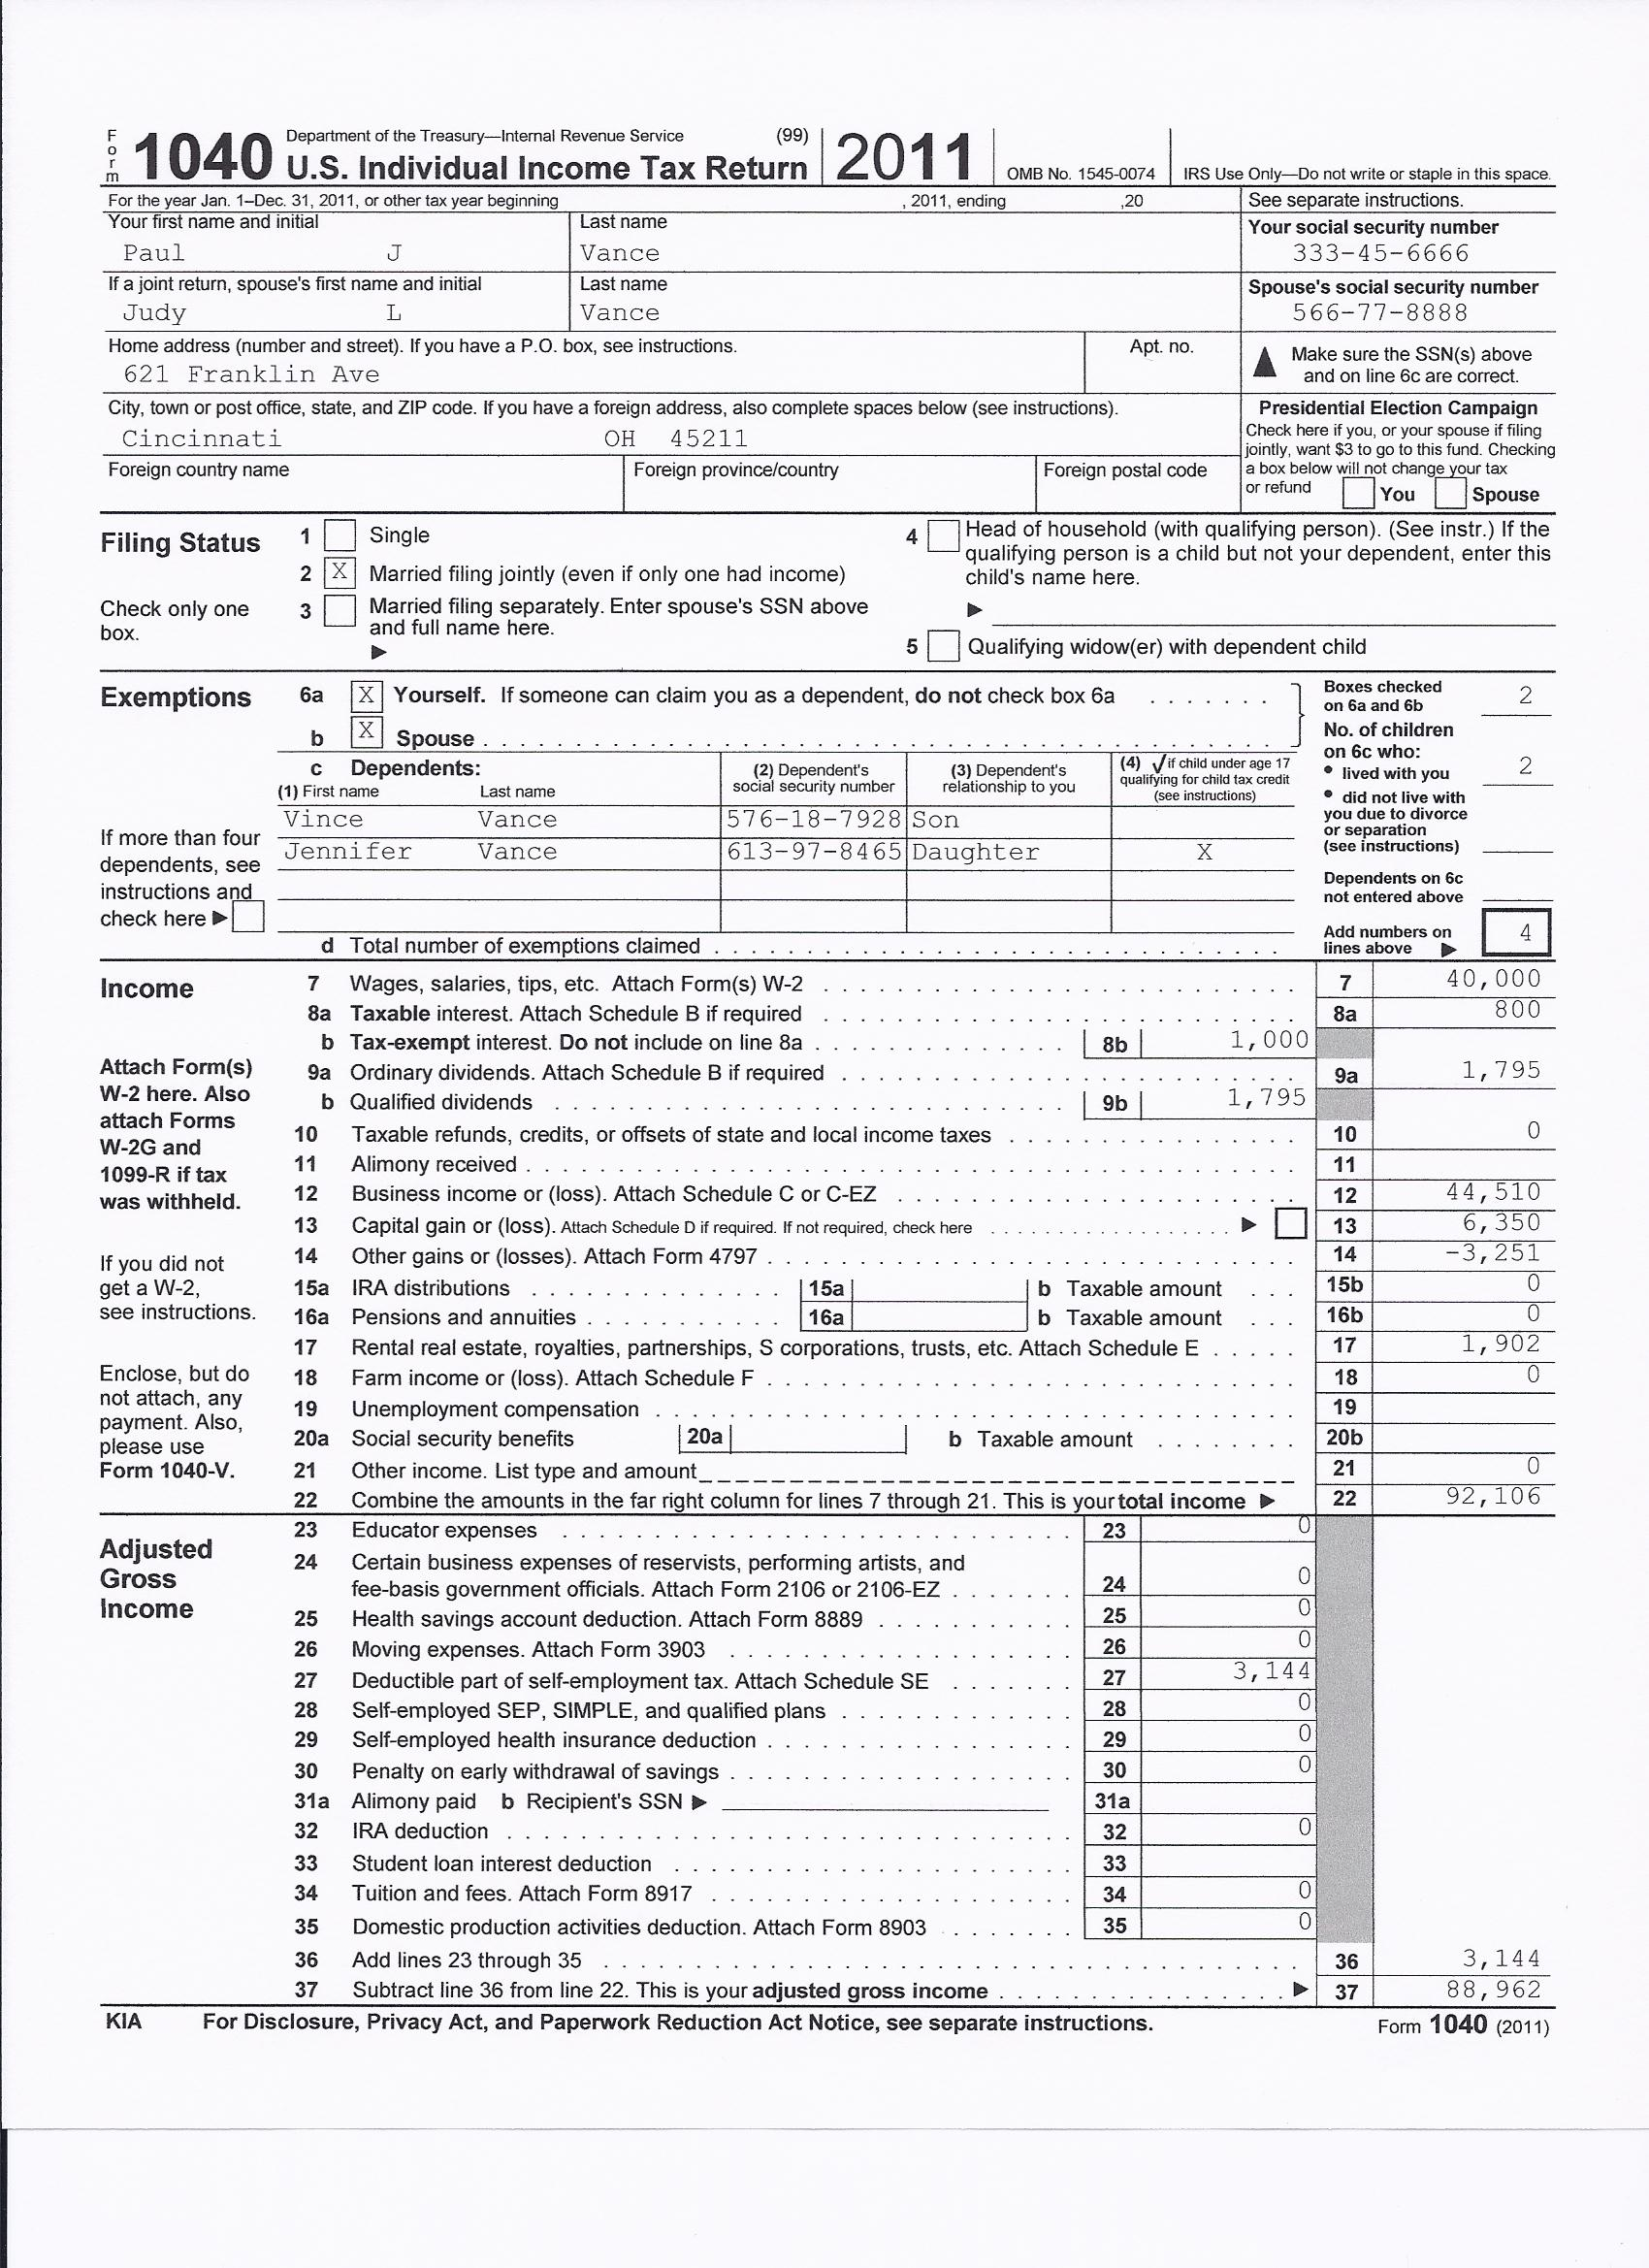 Irs tax form 1040 2012 quotes for 1040x instructions tax table